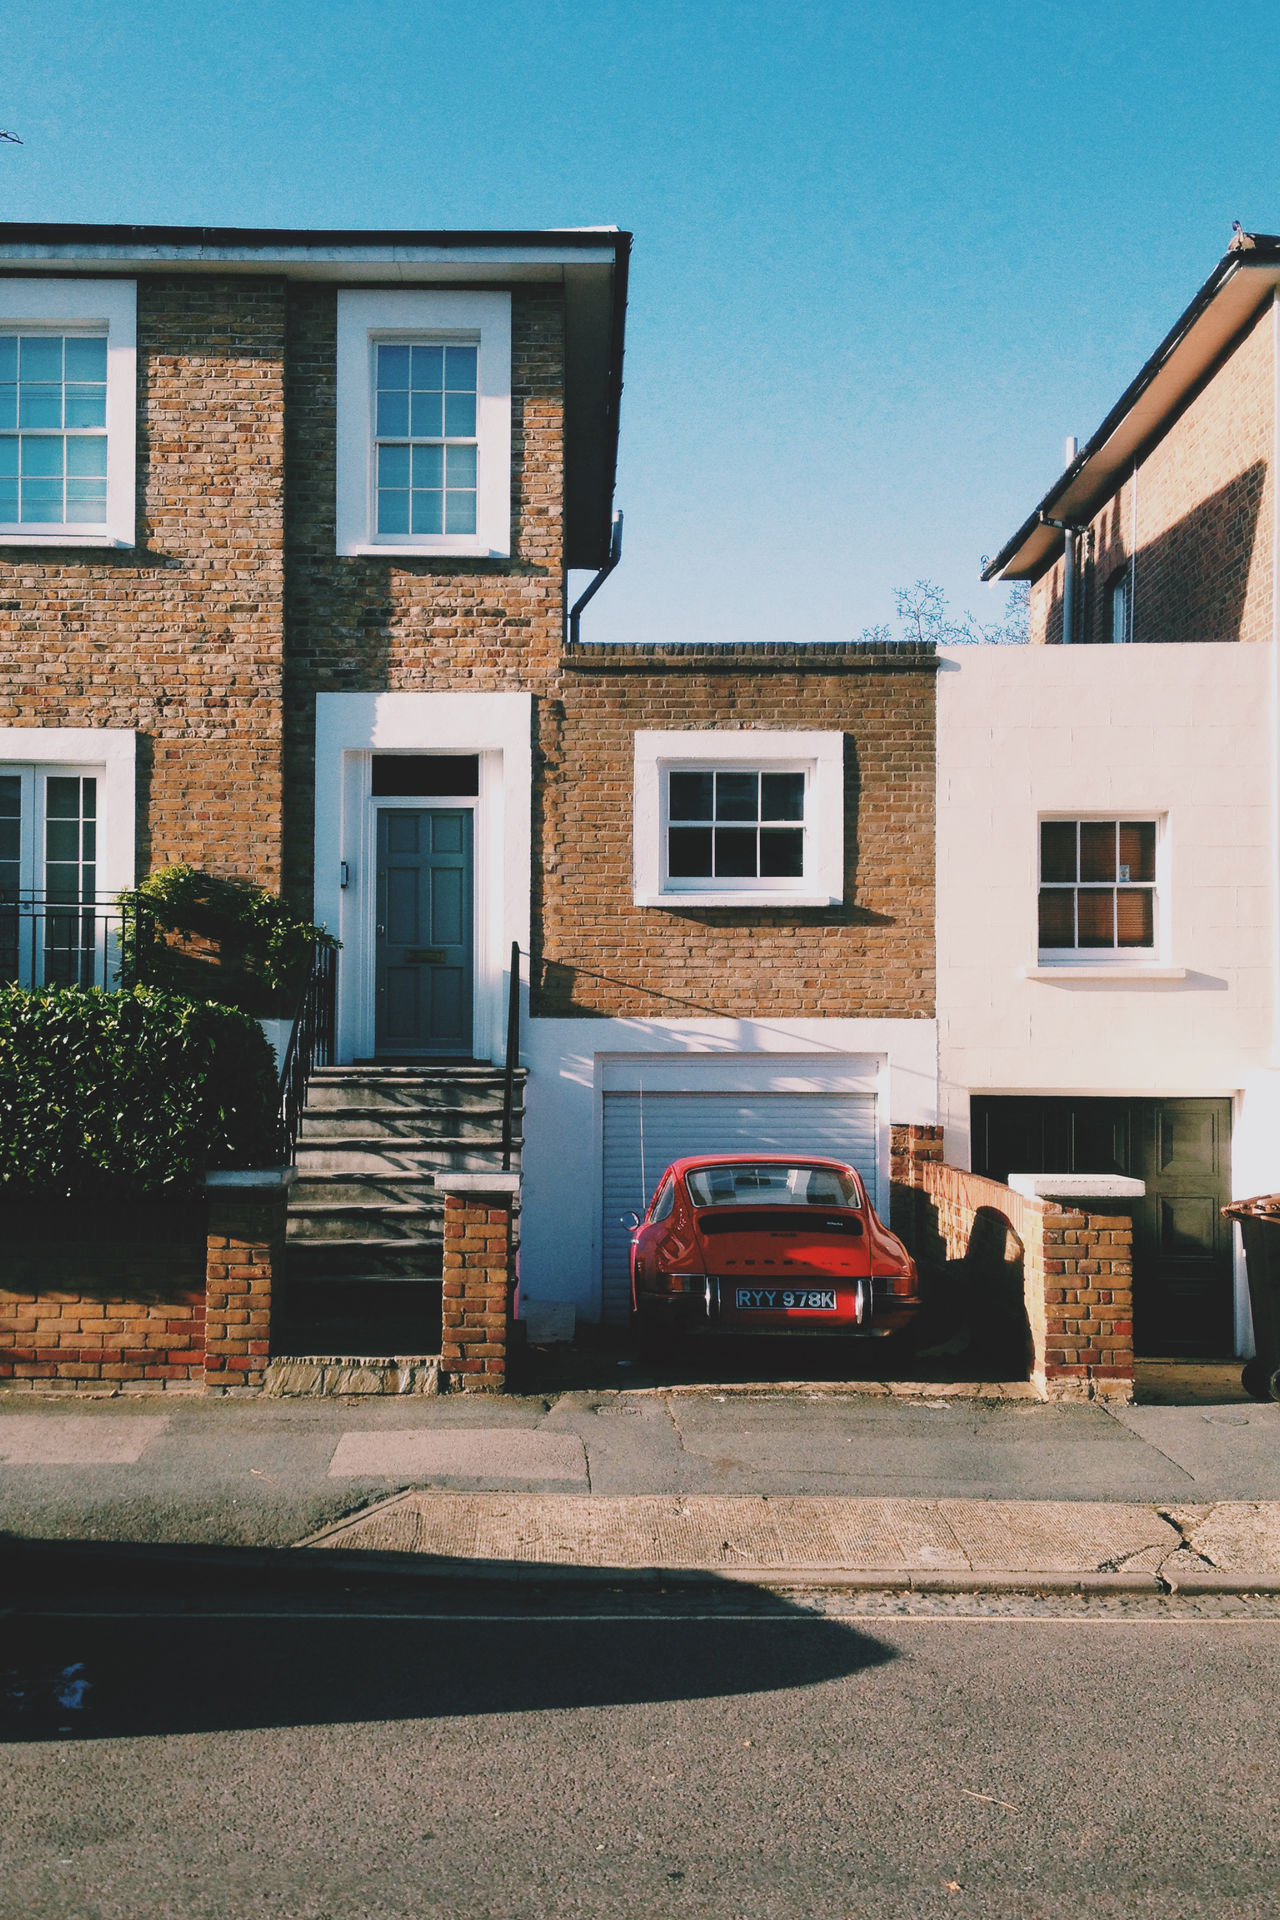 Architecture Architecture Bricks Building Building Exterior Car City City Day House Houses London Nature On Your Doorstep Old Buildings Spring Sun Urban Vintage Cars Windows